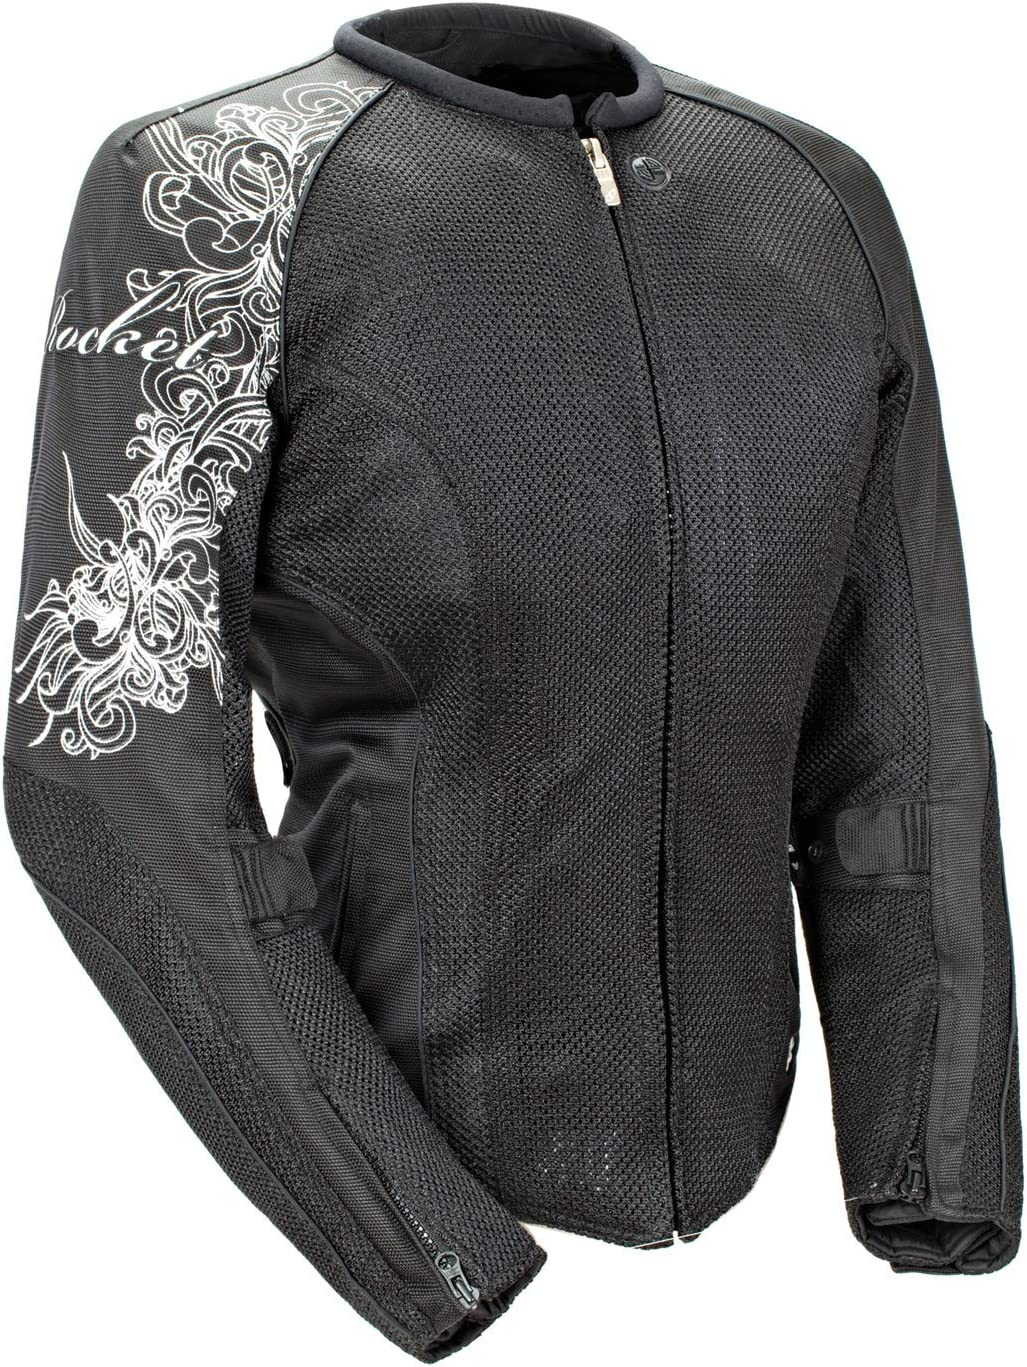 Joe Rocket Cleo 2.2 Women's Mesh Motorcycle Riding Jacket